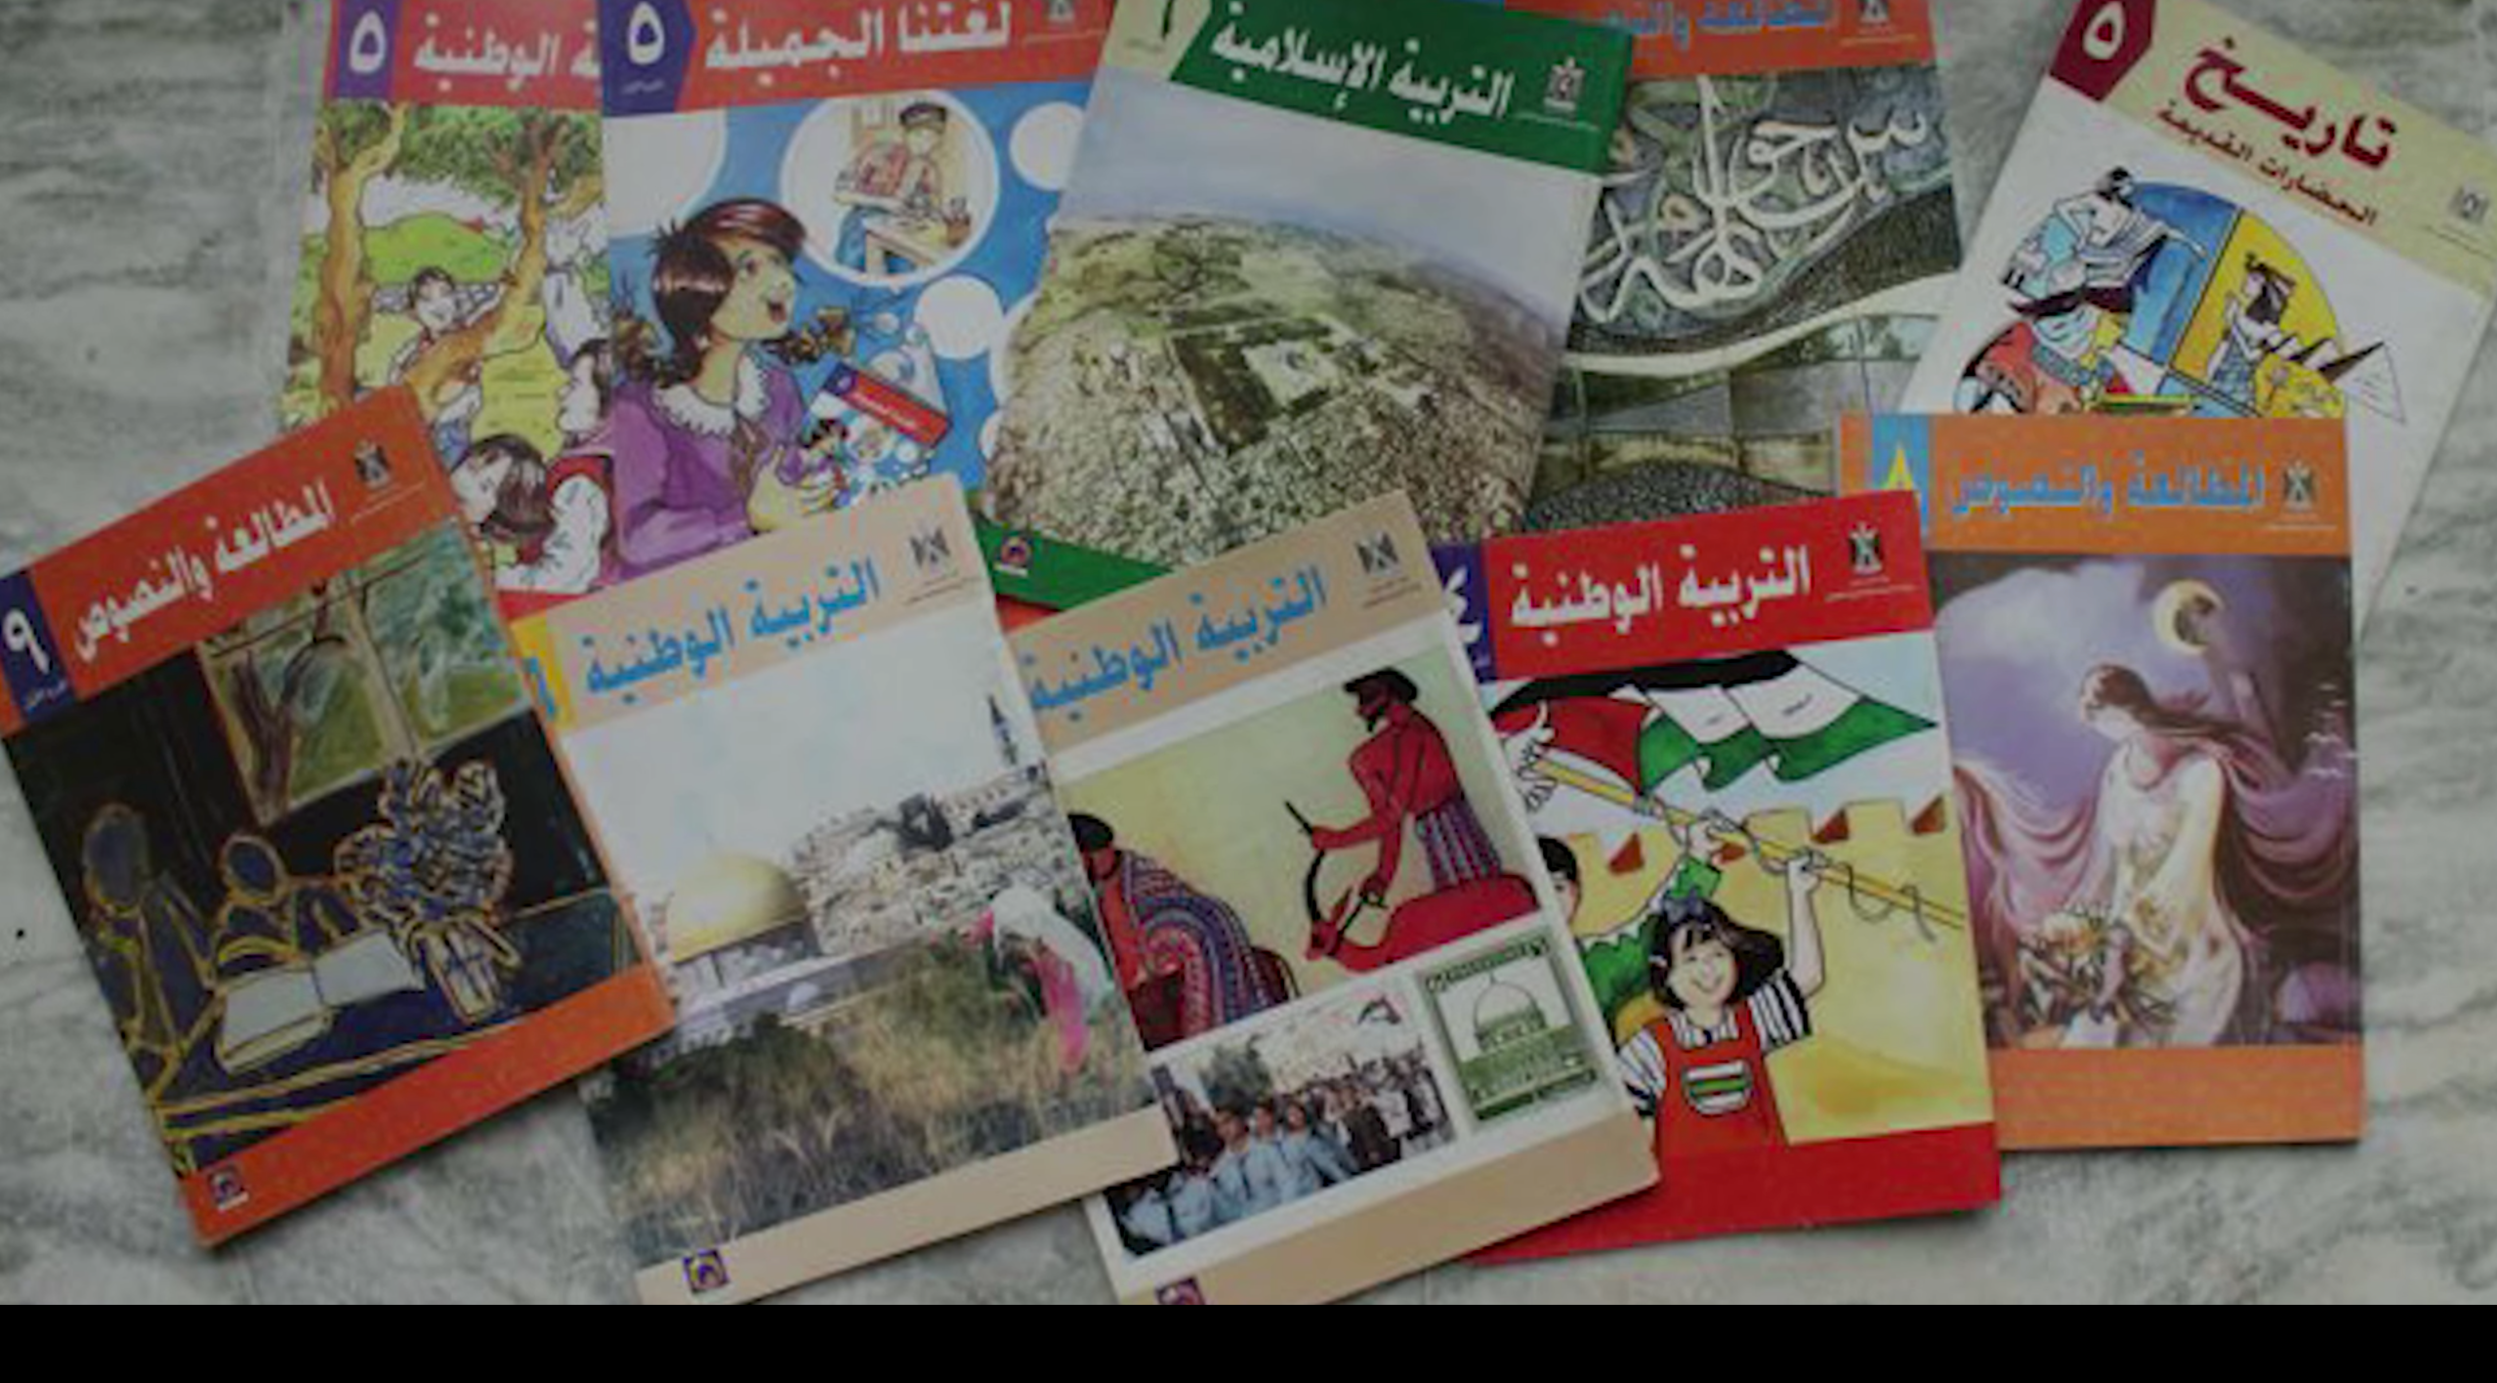 Over 240 UNRWA textbooks have been found with inciting materials.